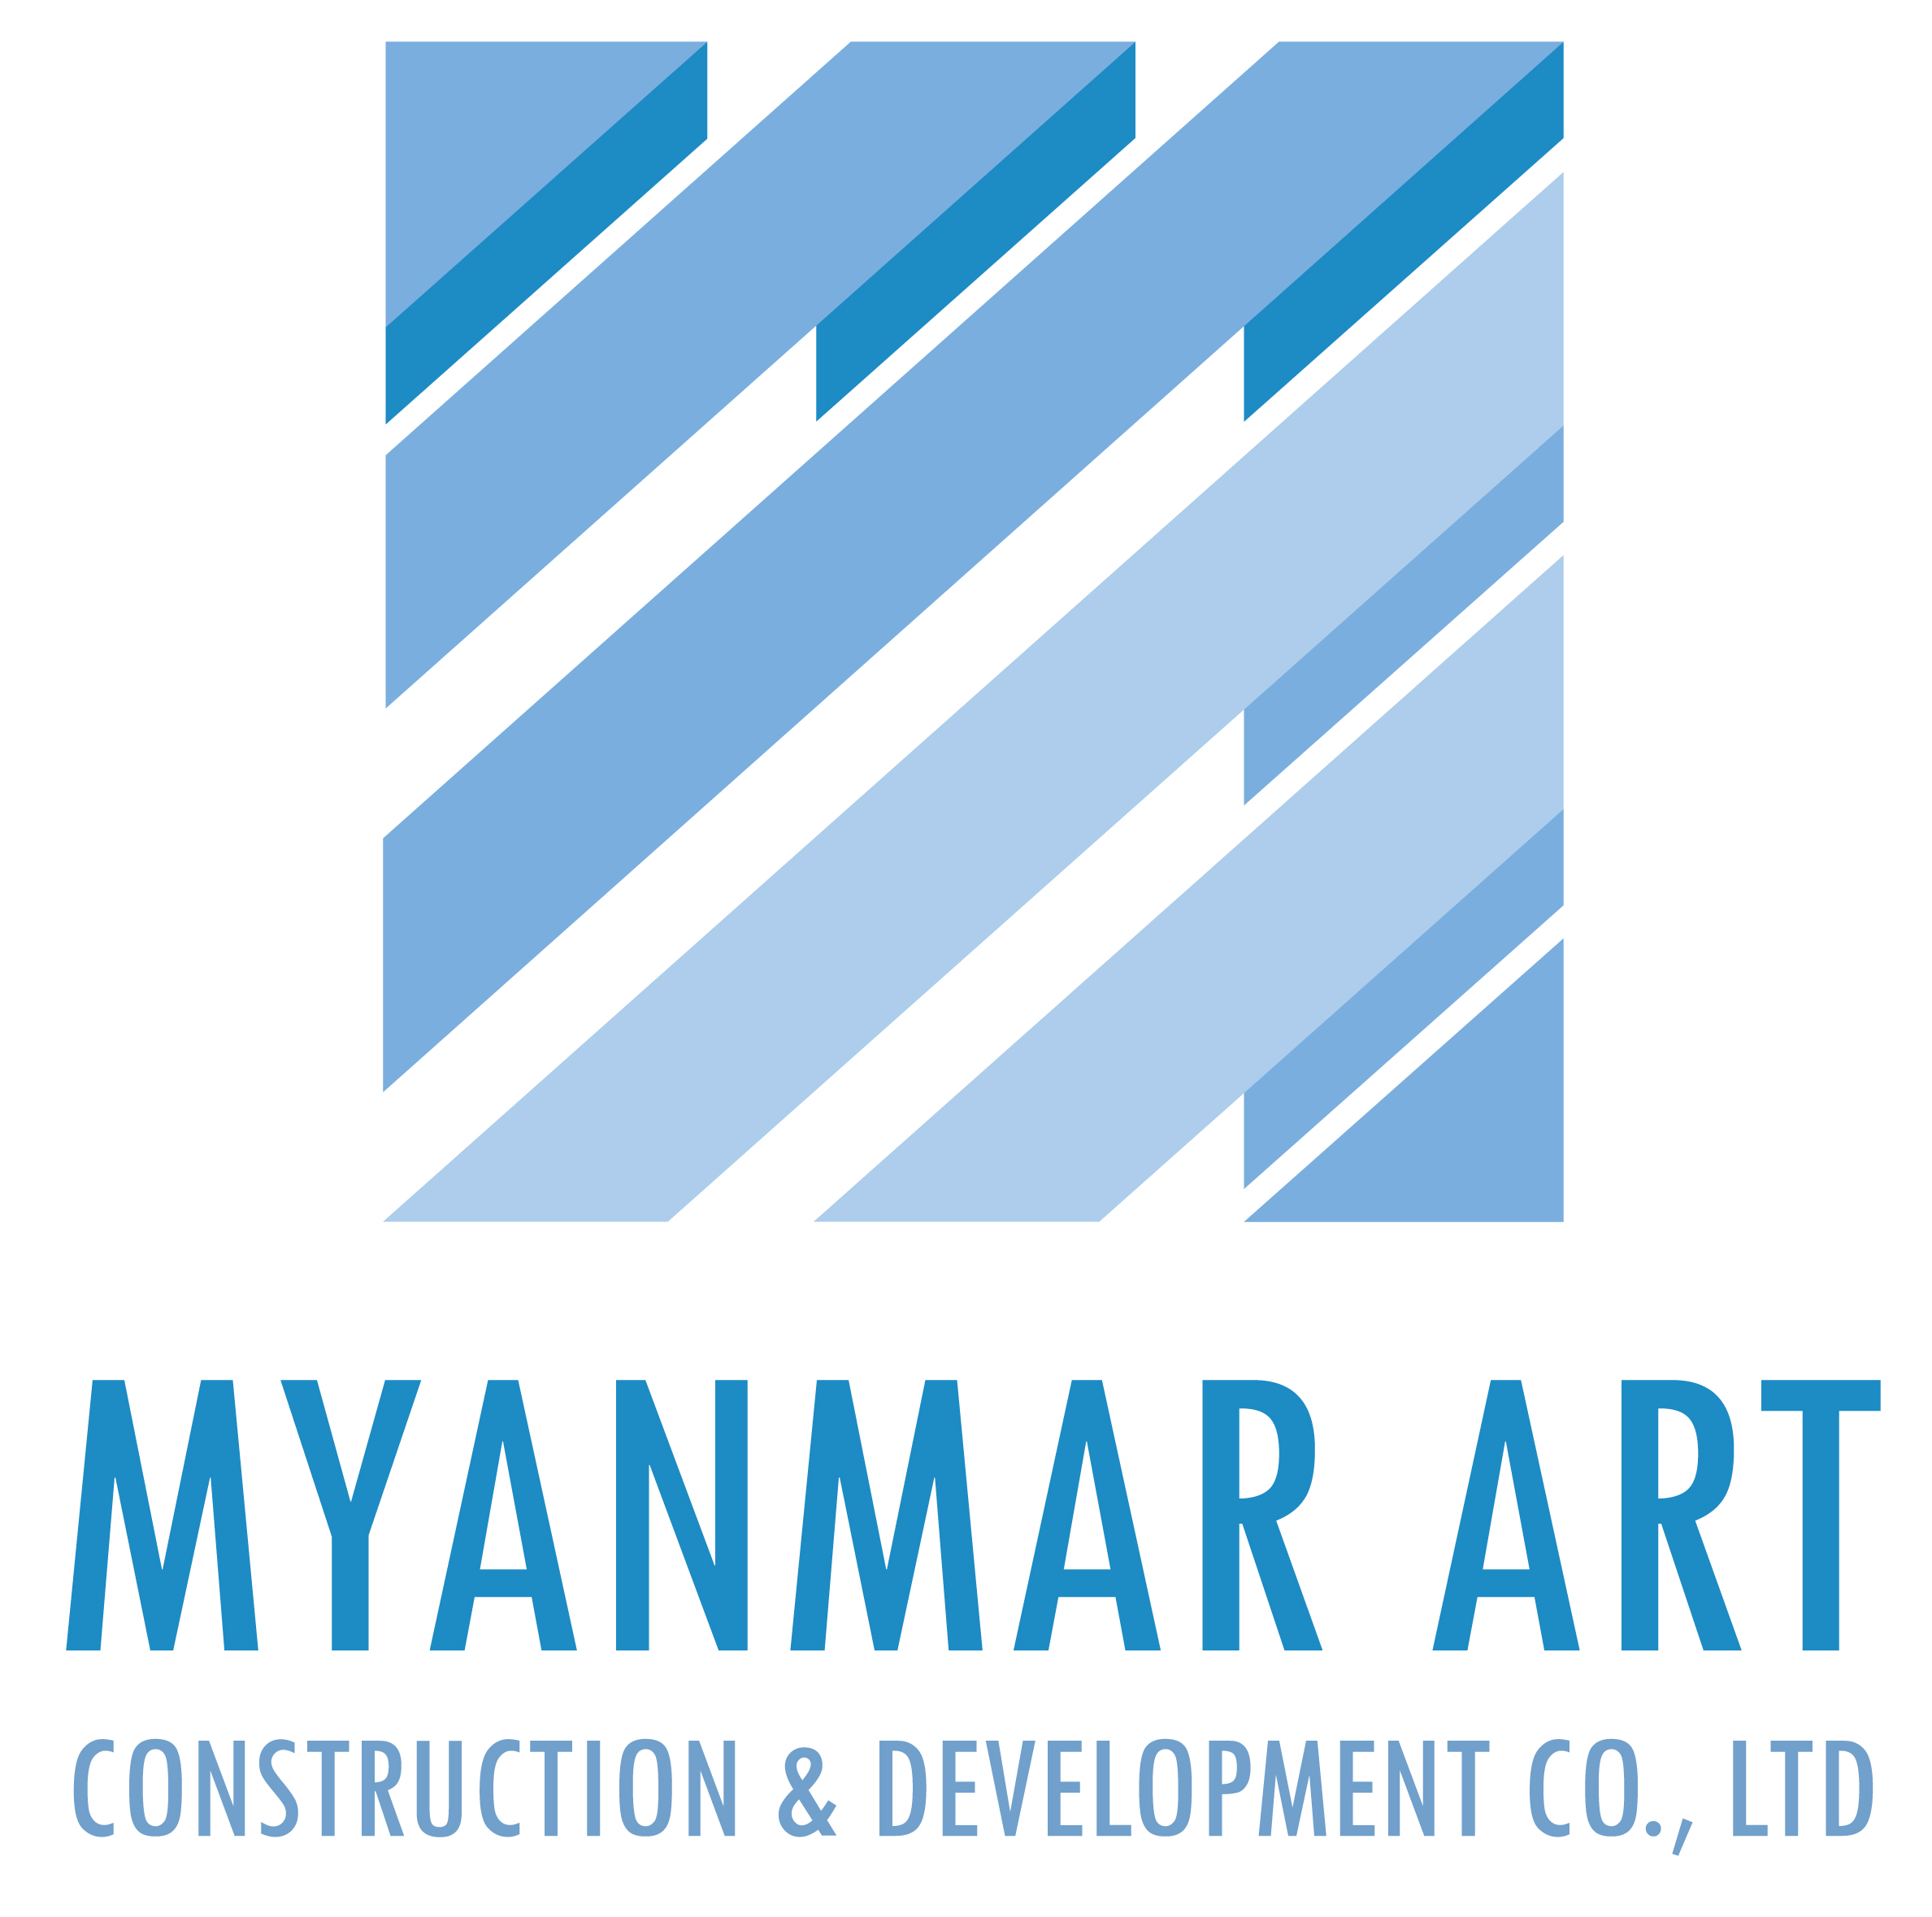 Myanmar Art Construction & Development